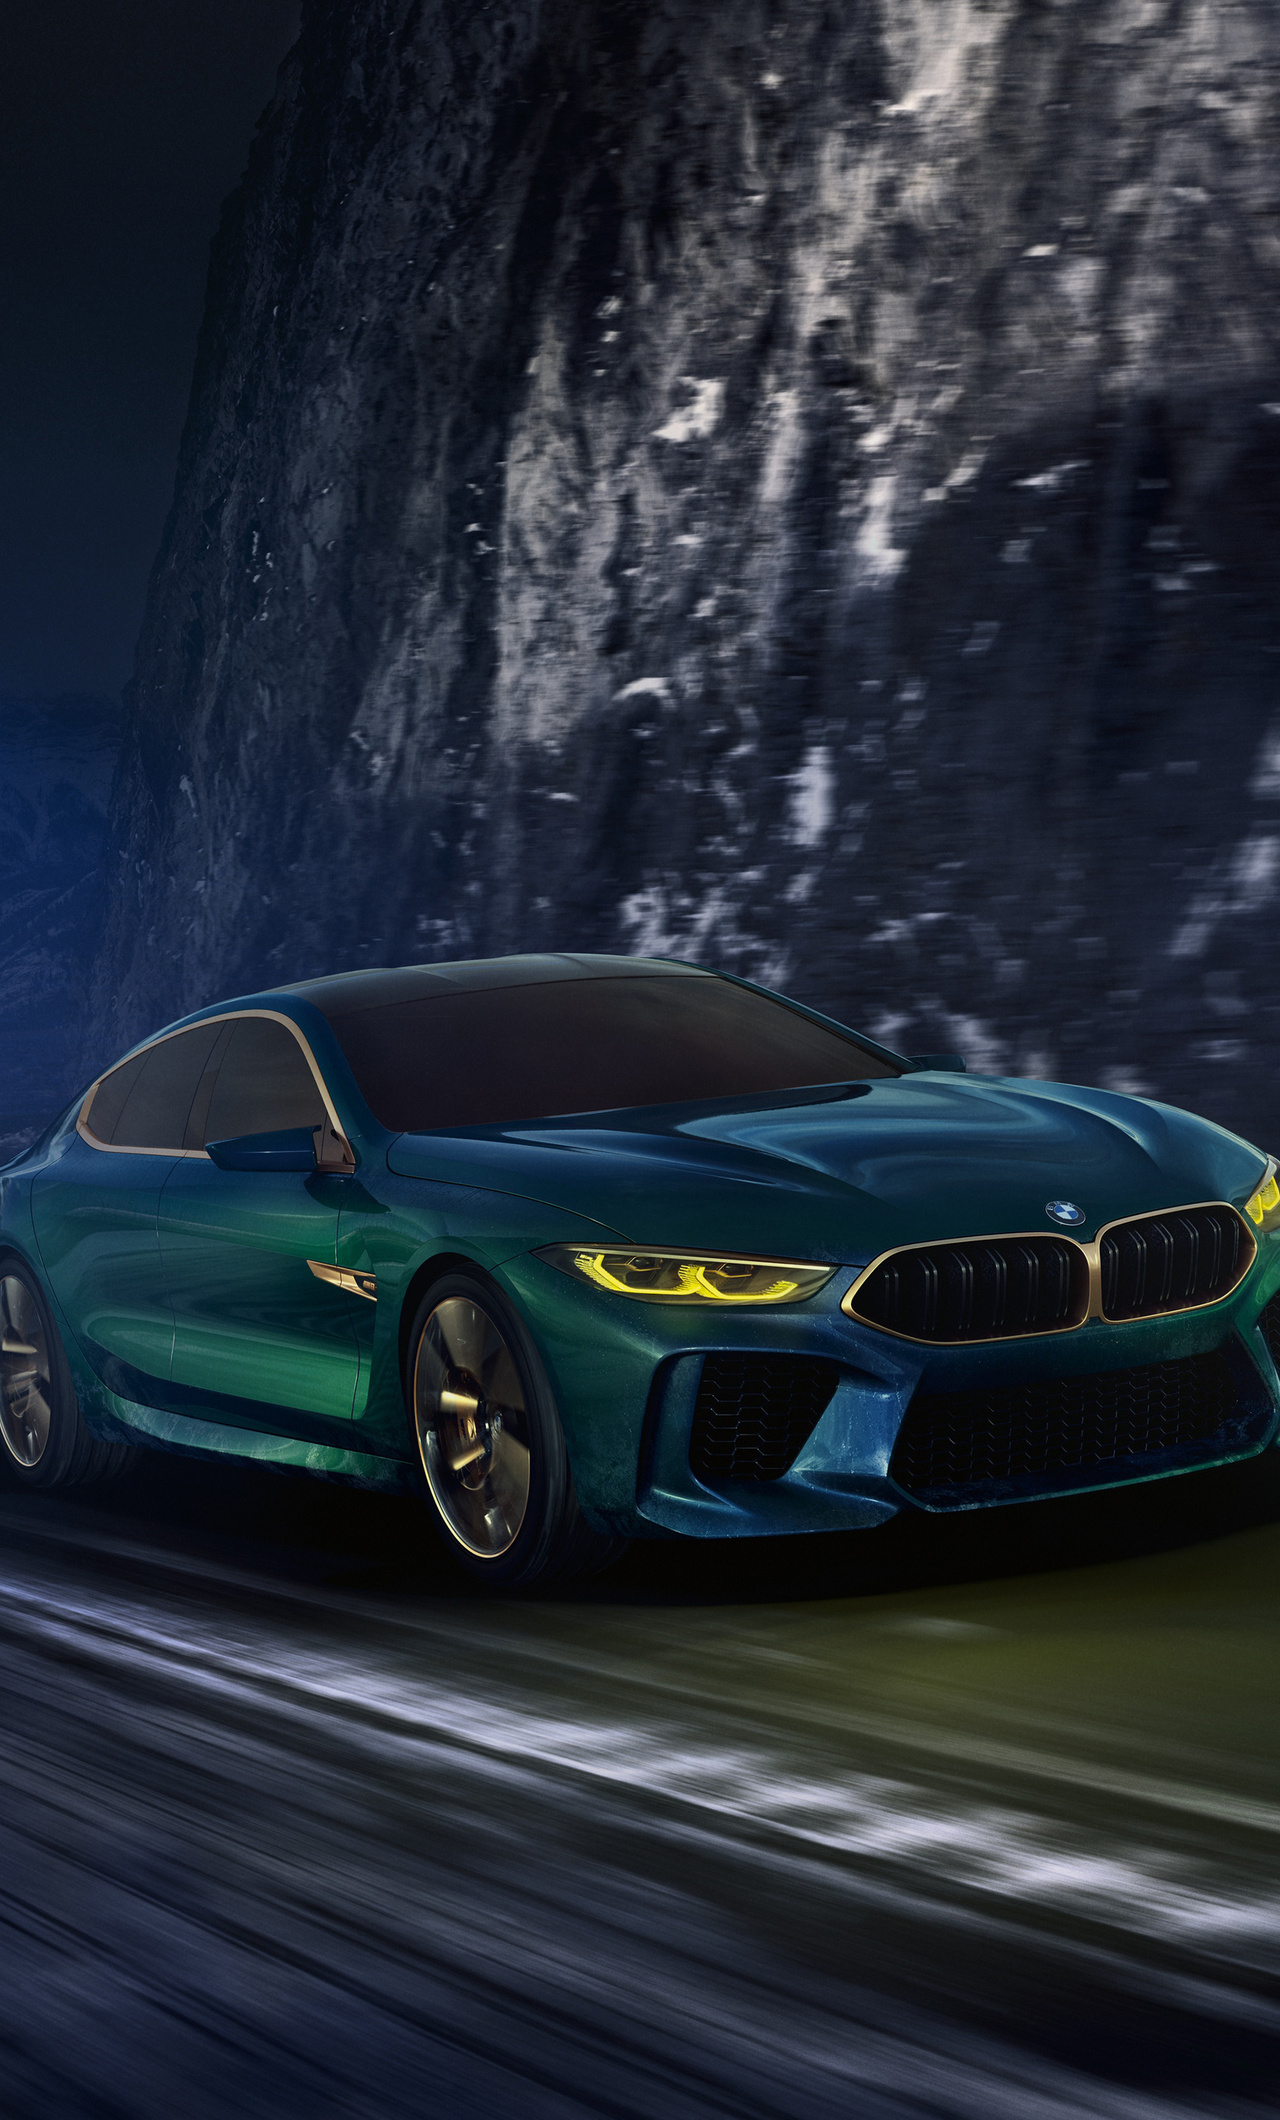 1280x2120 Bmw Concept M8 Gran Coupe Front View 4k Iphone 6 Hd 4k